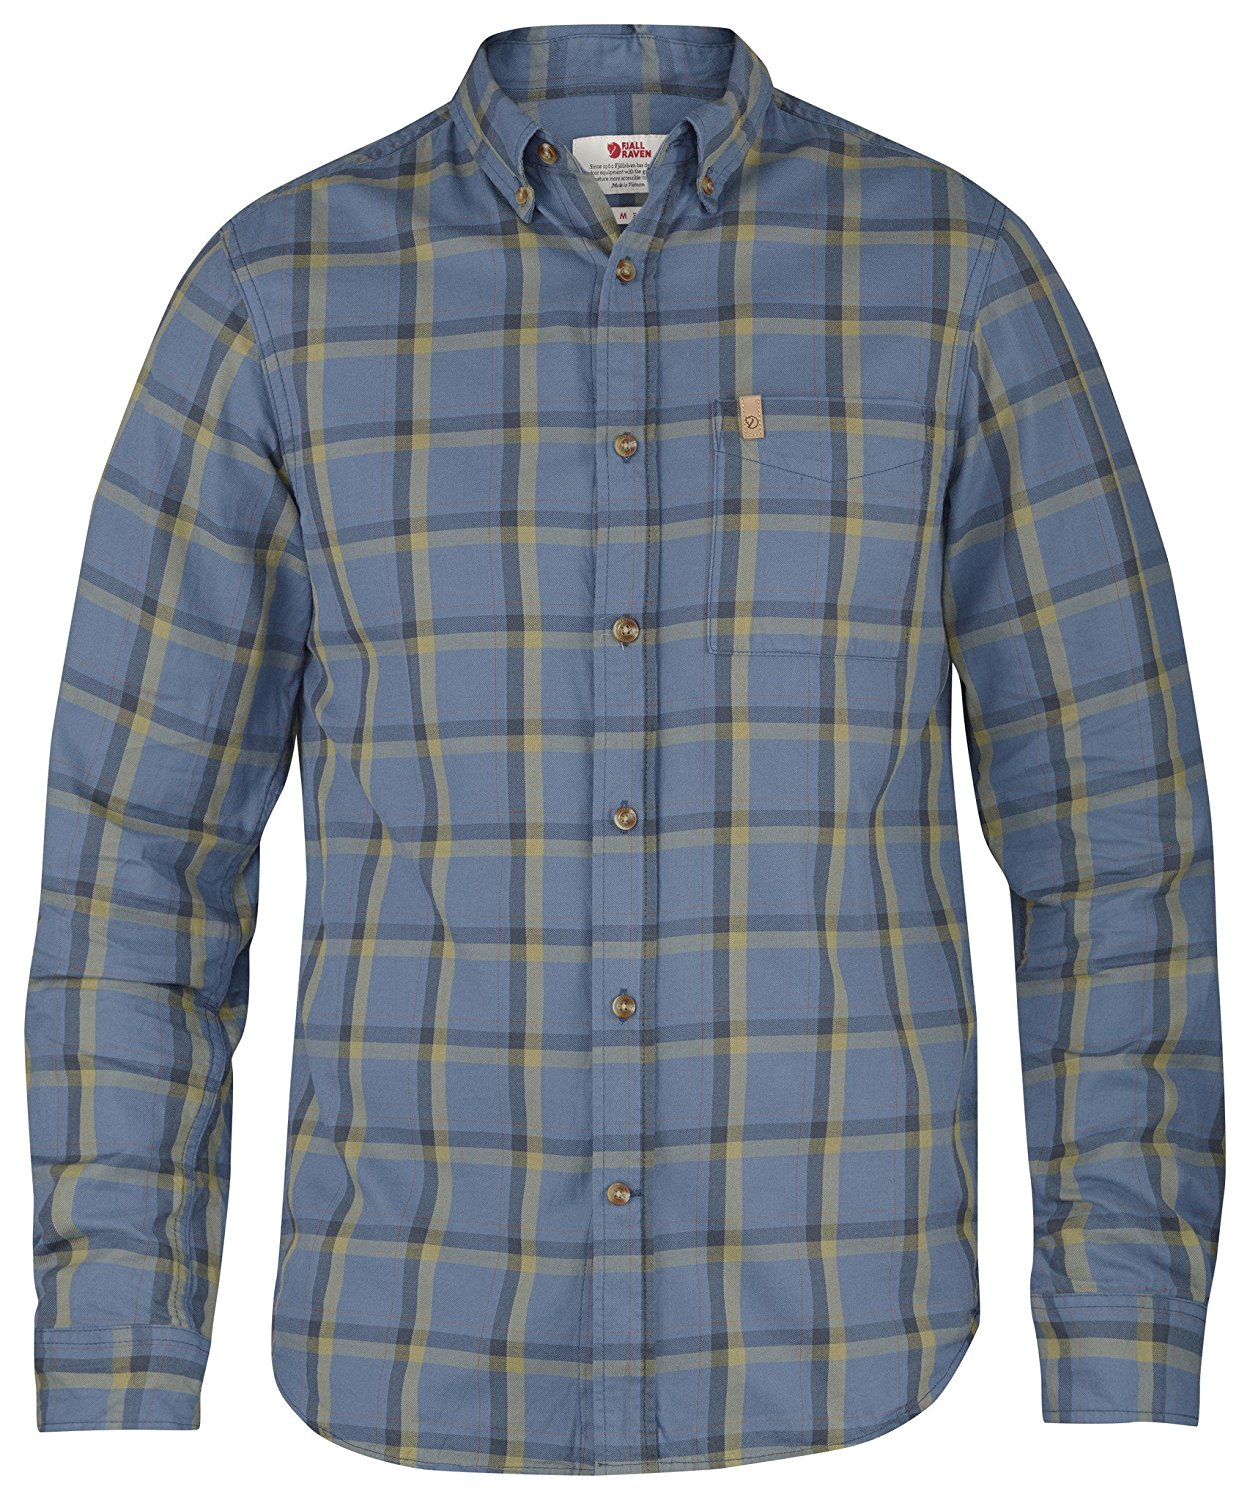 Buy Fjallraven Mens Ovik Padded Shirt in Cheap Price on Alibaba.com 796a2c5dd85f